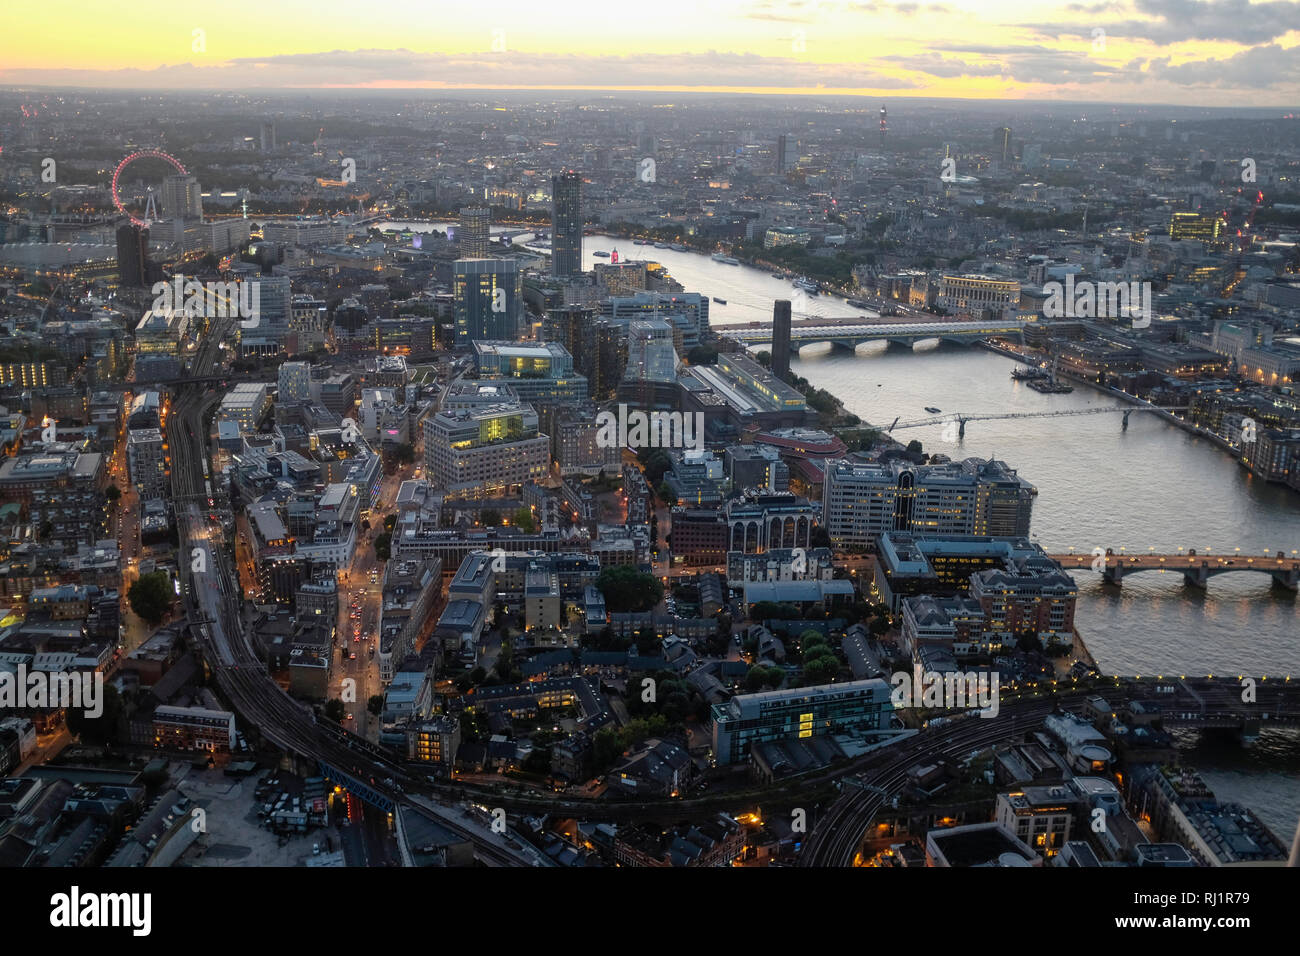 Aerial view of London Skyline and River Thames Cityscape viewed from the Shard at night. Stock Photo